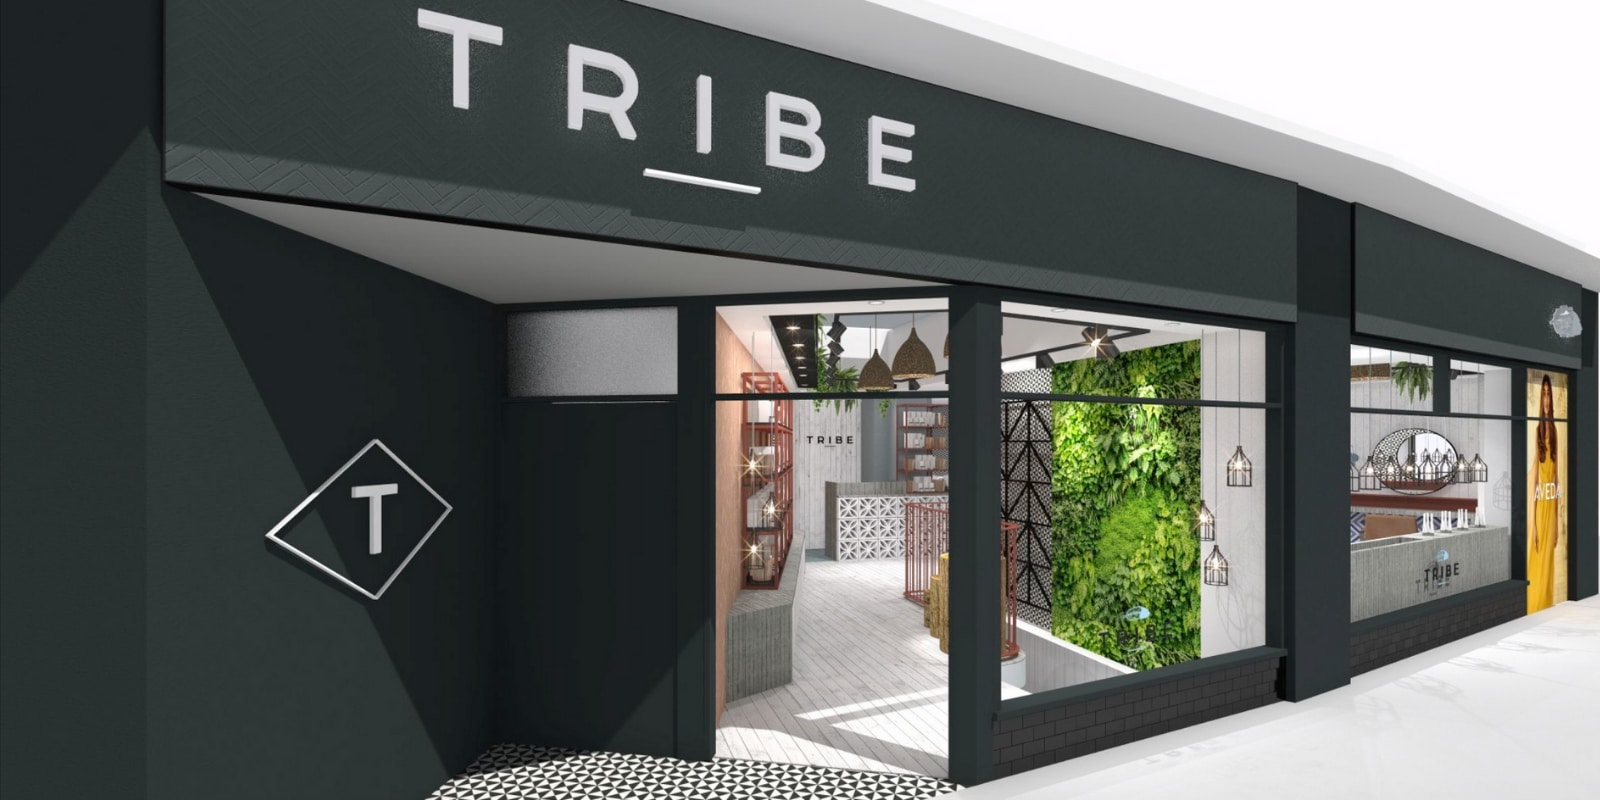 Tribe Clapham opening early 2019